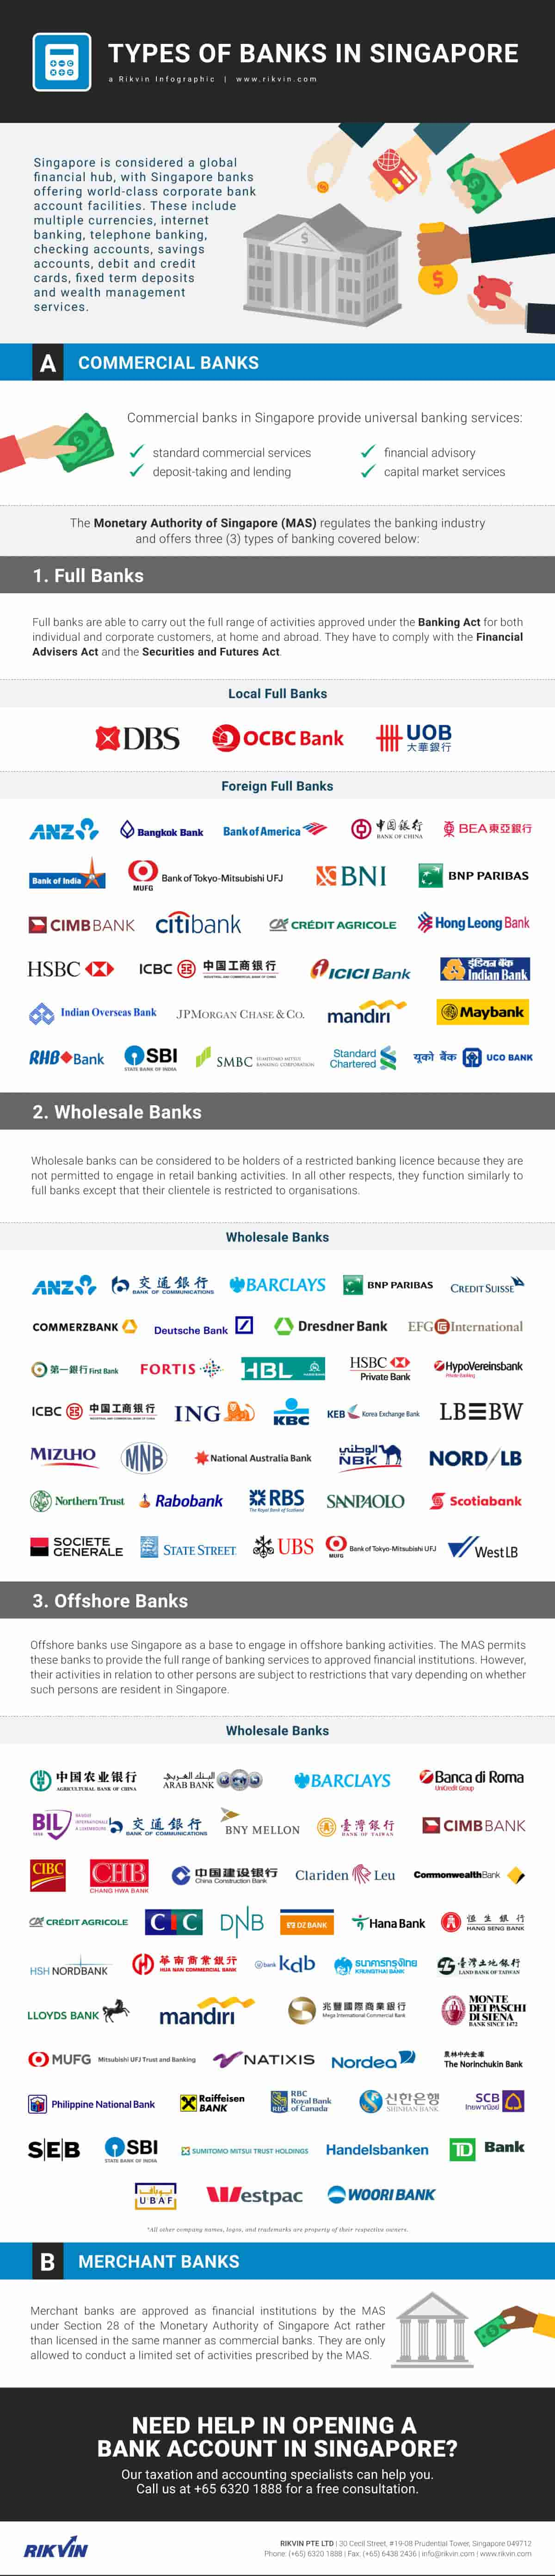 Types_of_Banks_in_Singapore-Rikvin_Infographic Types of Banks in Singapore